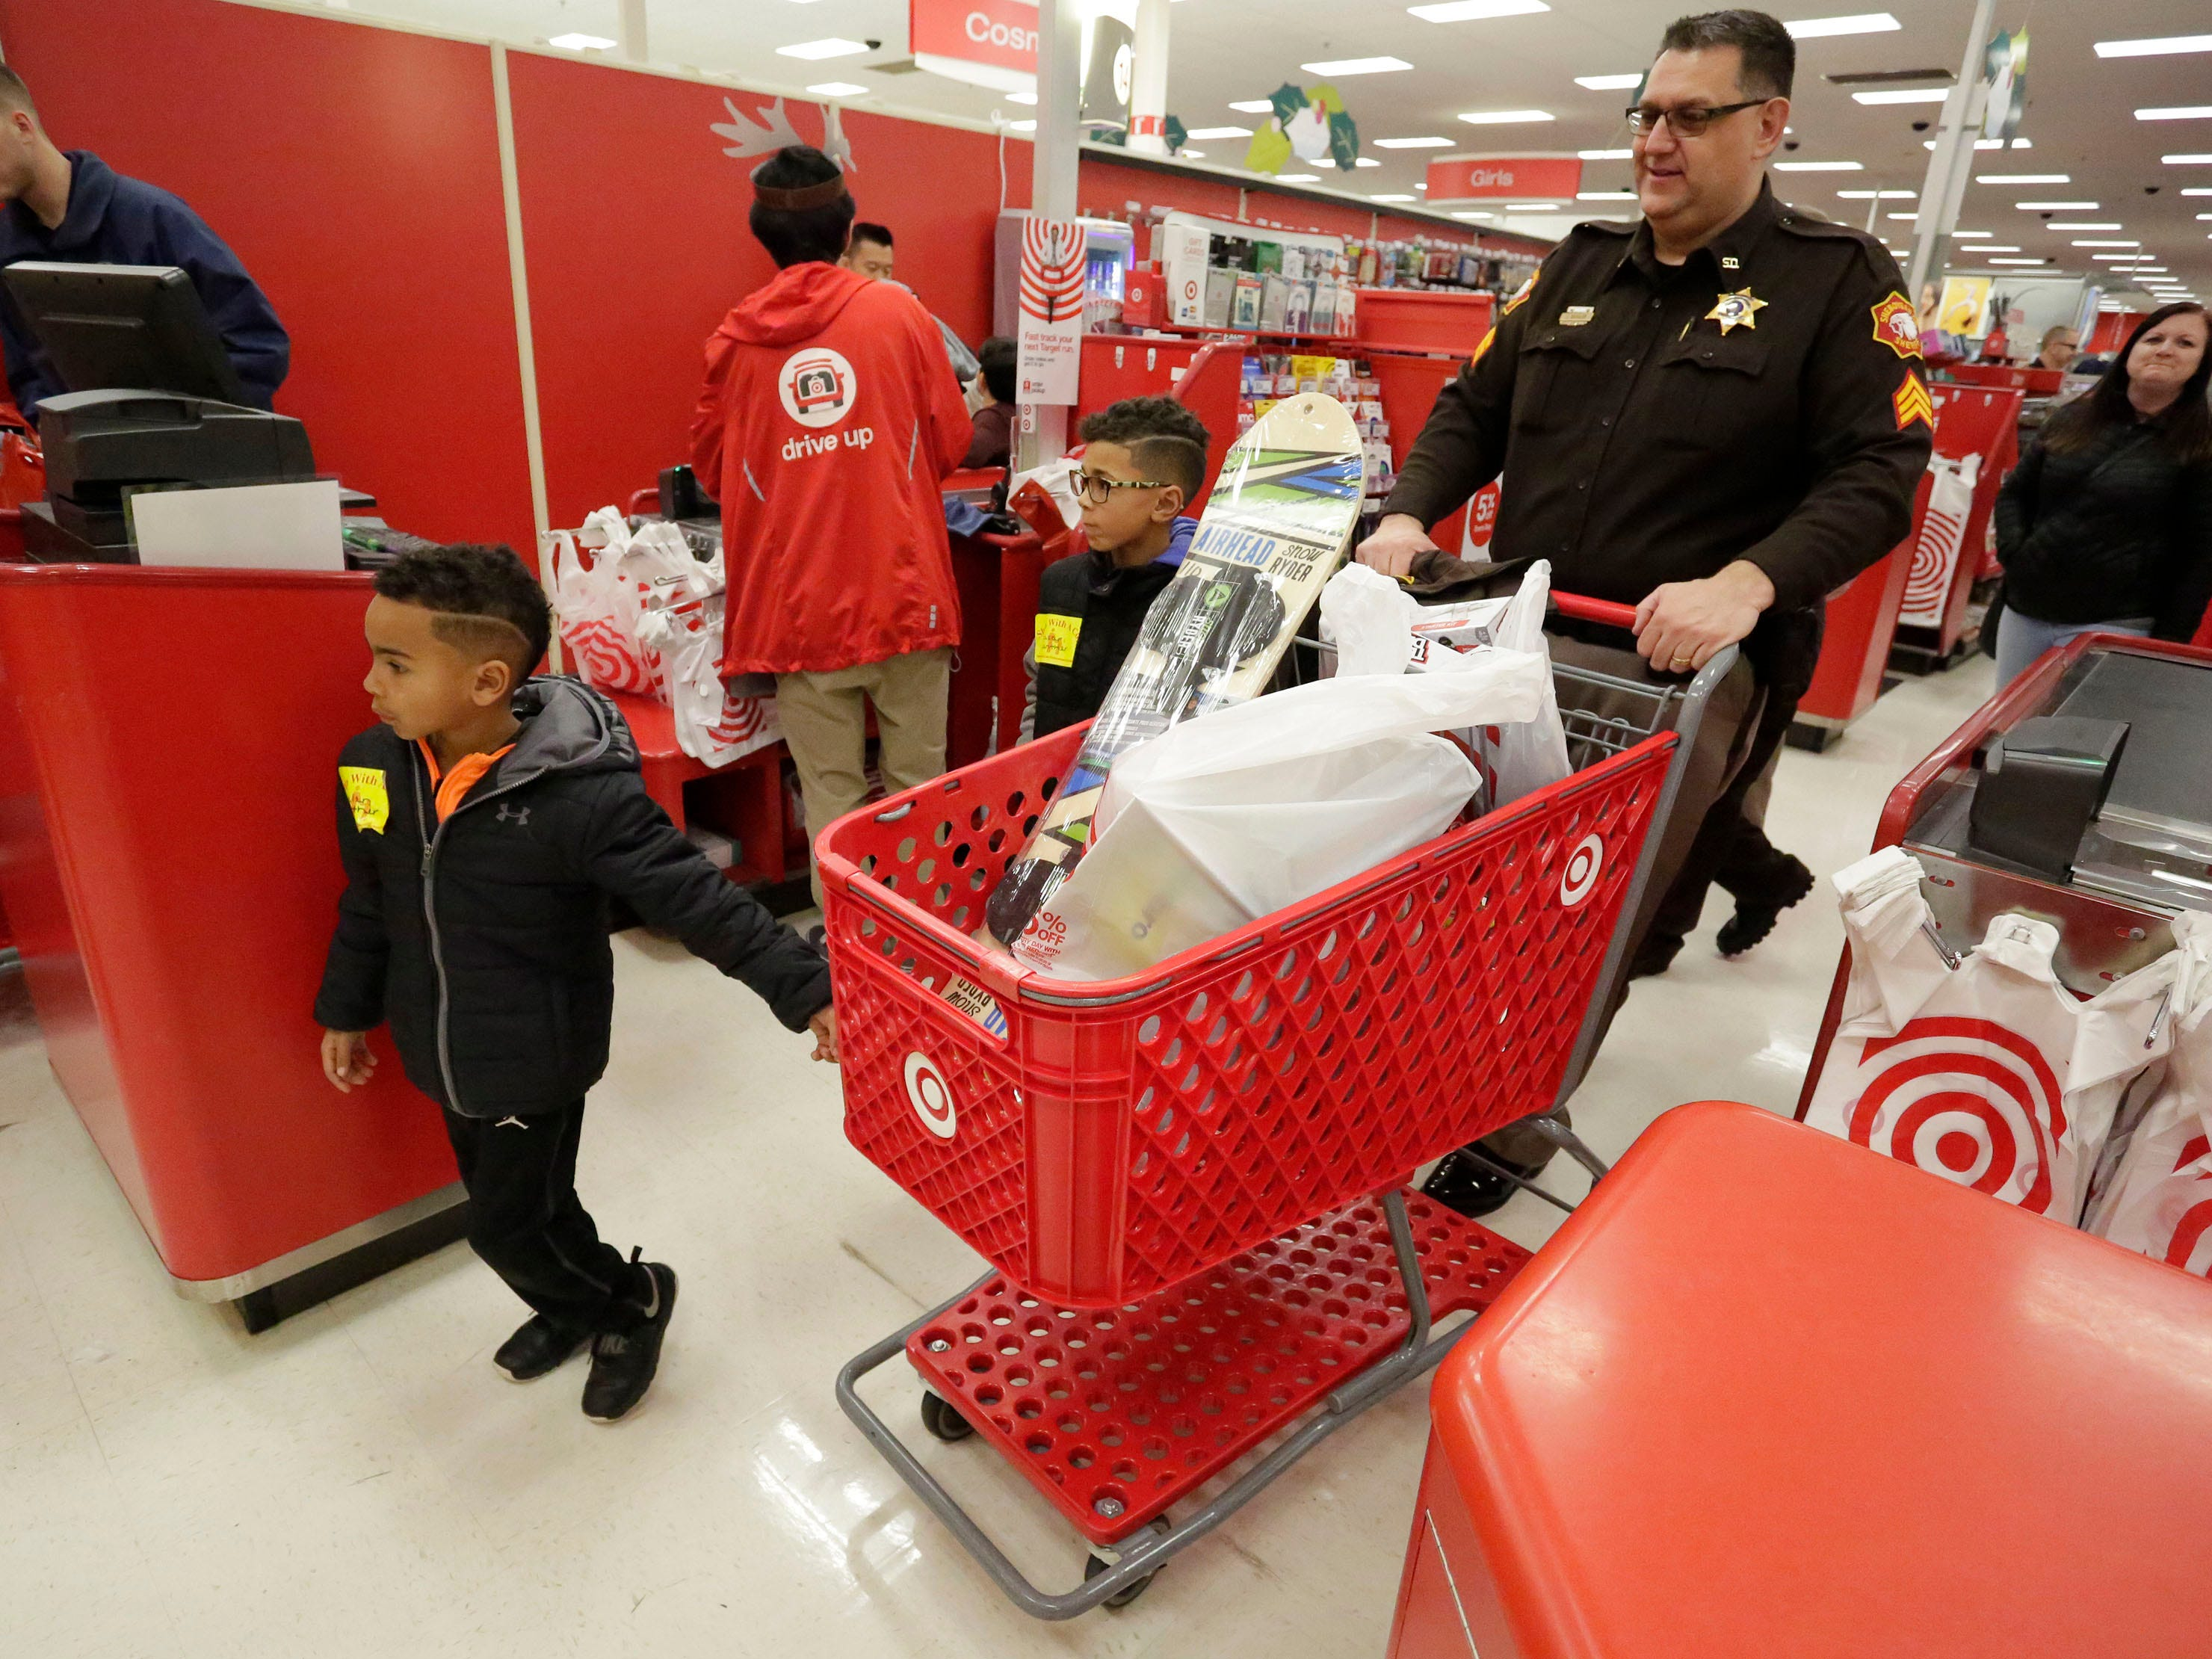 Sheriff Department's Lance Dassler, pushes a cart with youngsters who received toys in the Shop with a Cop program, Tuesday, December 4, 2018, in Kohler, Wis. The program, in its 21st year, raises funds to give children a chance to buy holiday gifts that they otherwise might not receive.